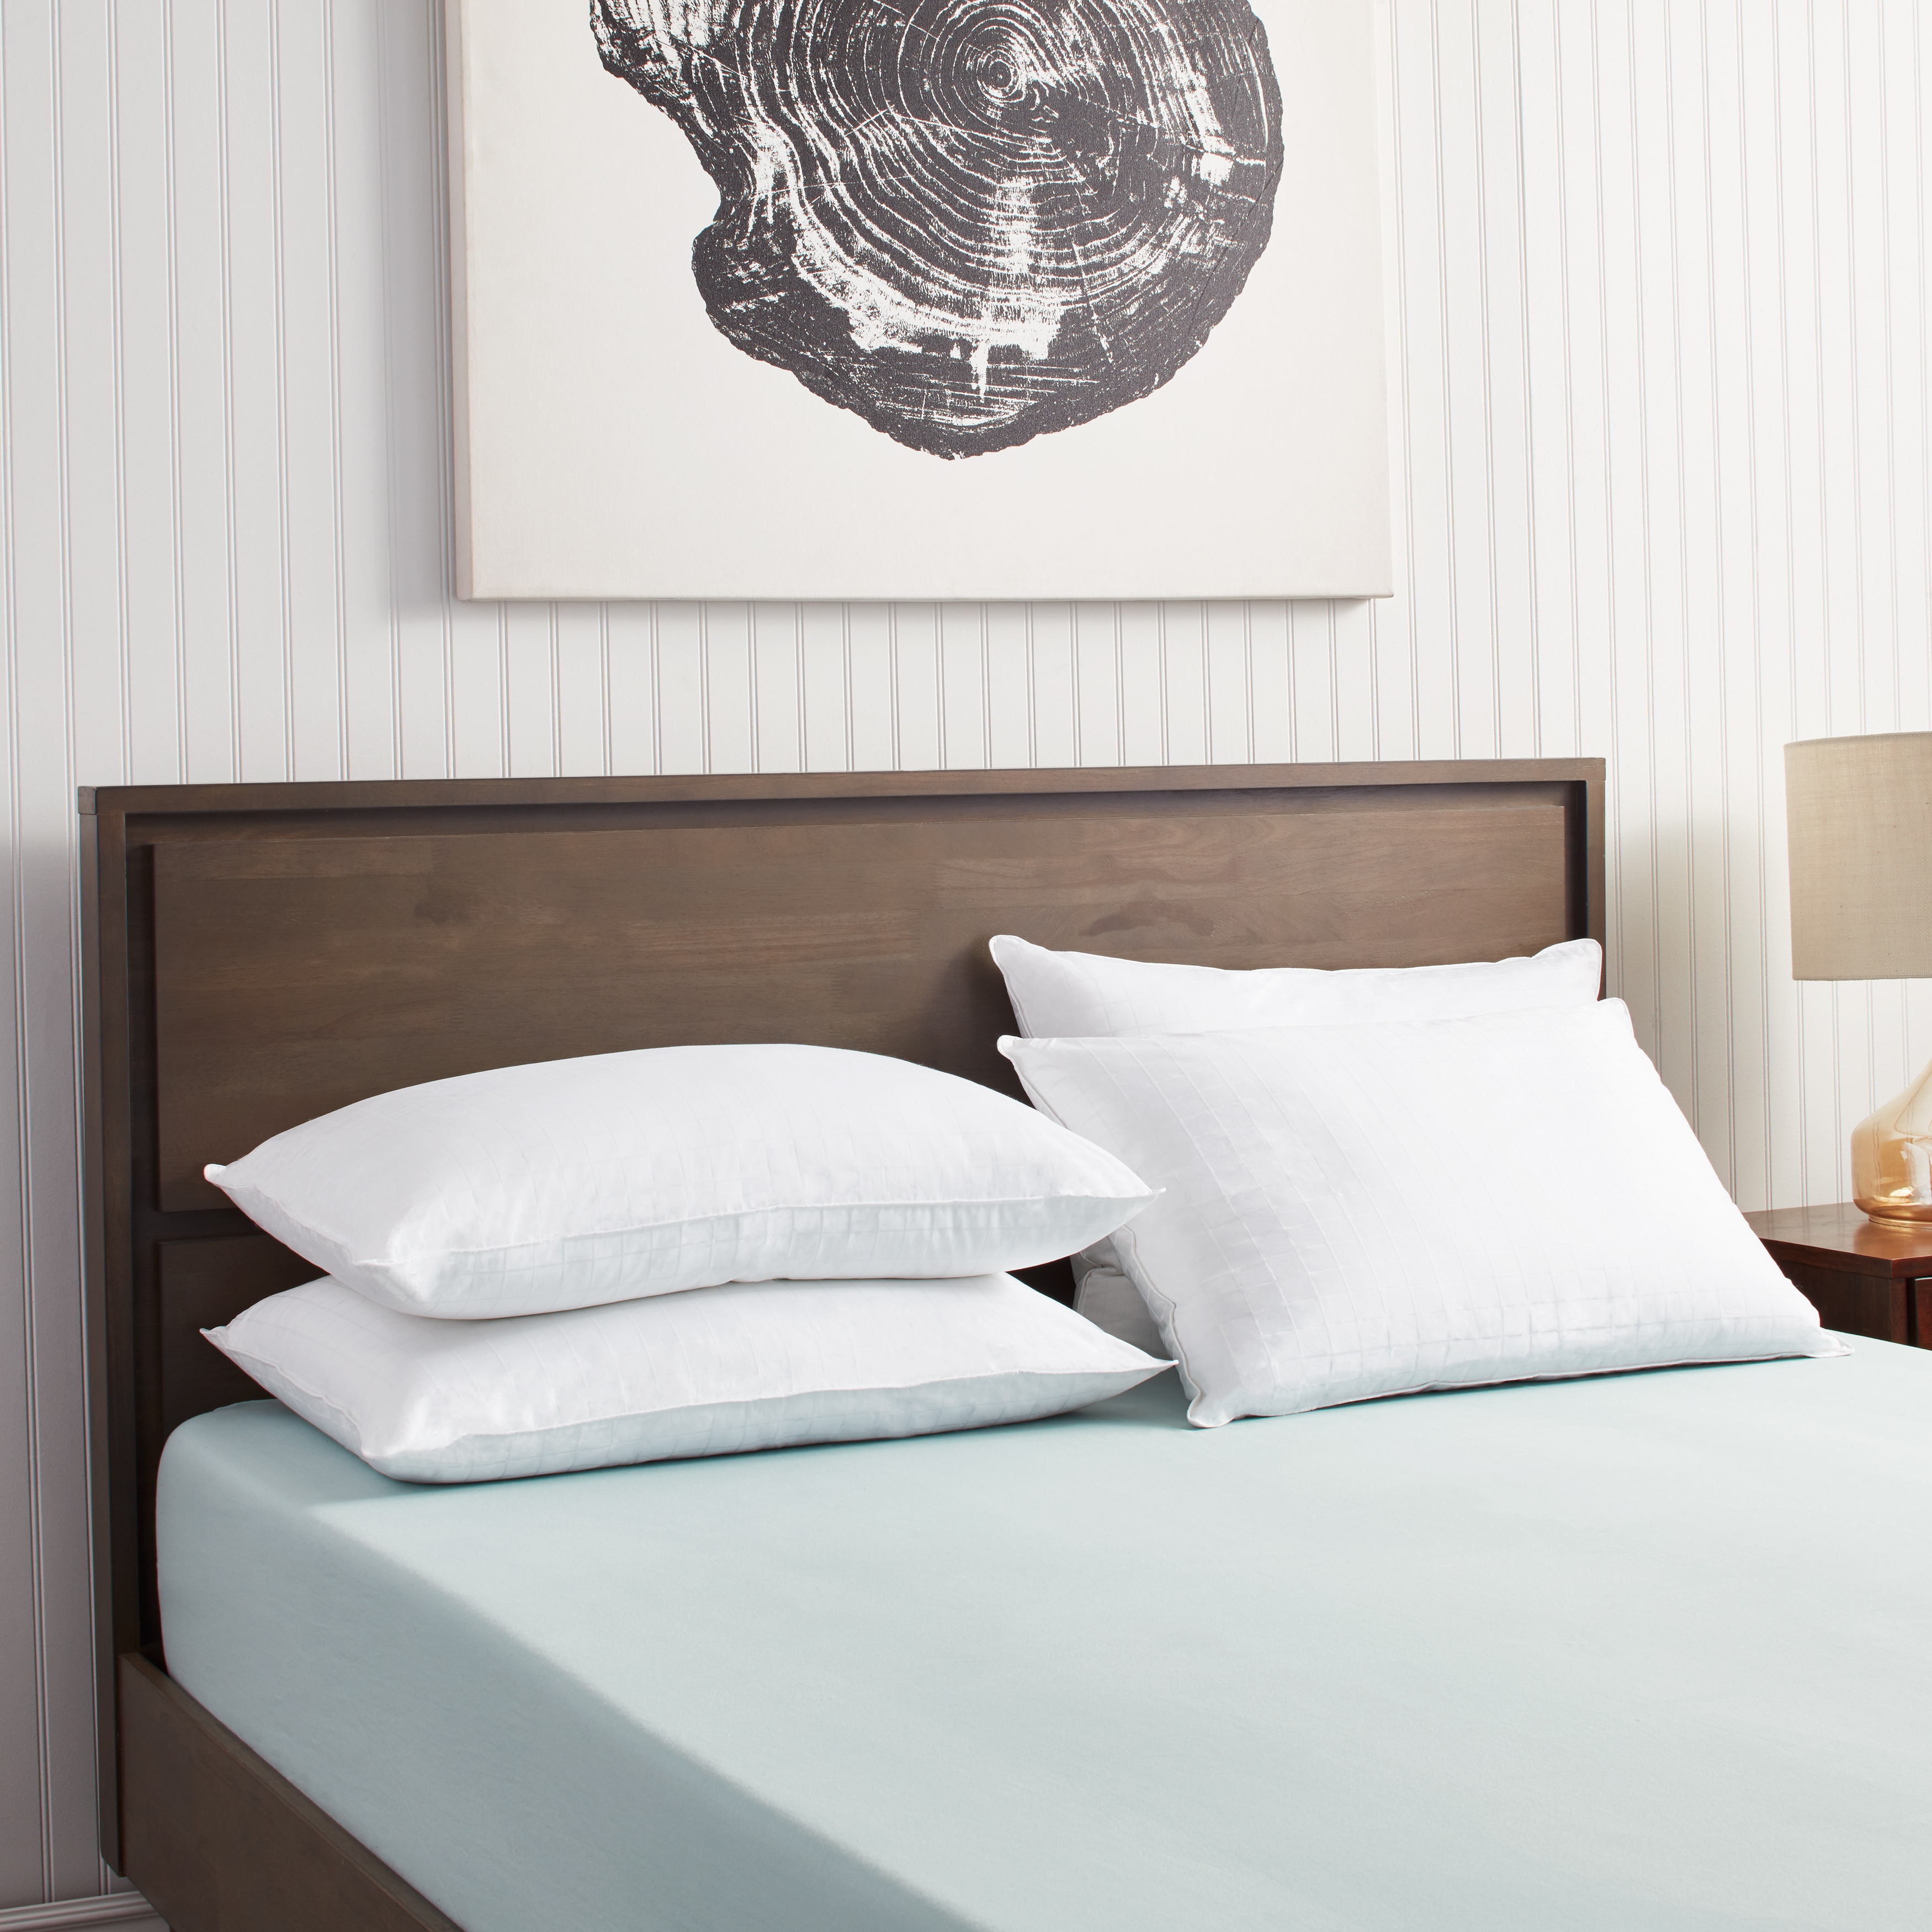 photo simplify bedroom pillows bedding am your